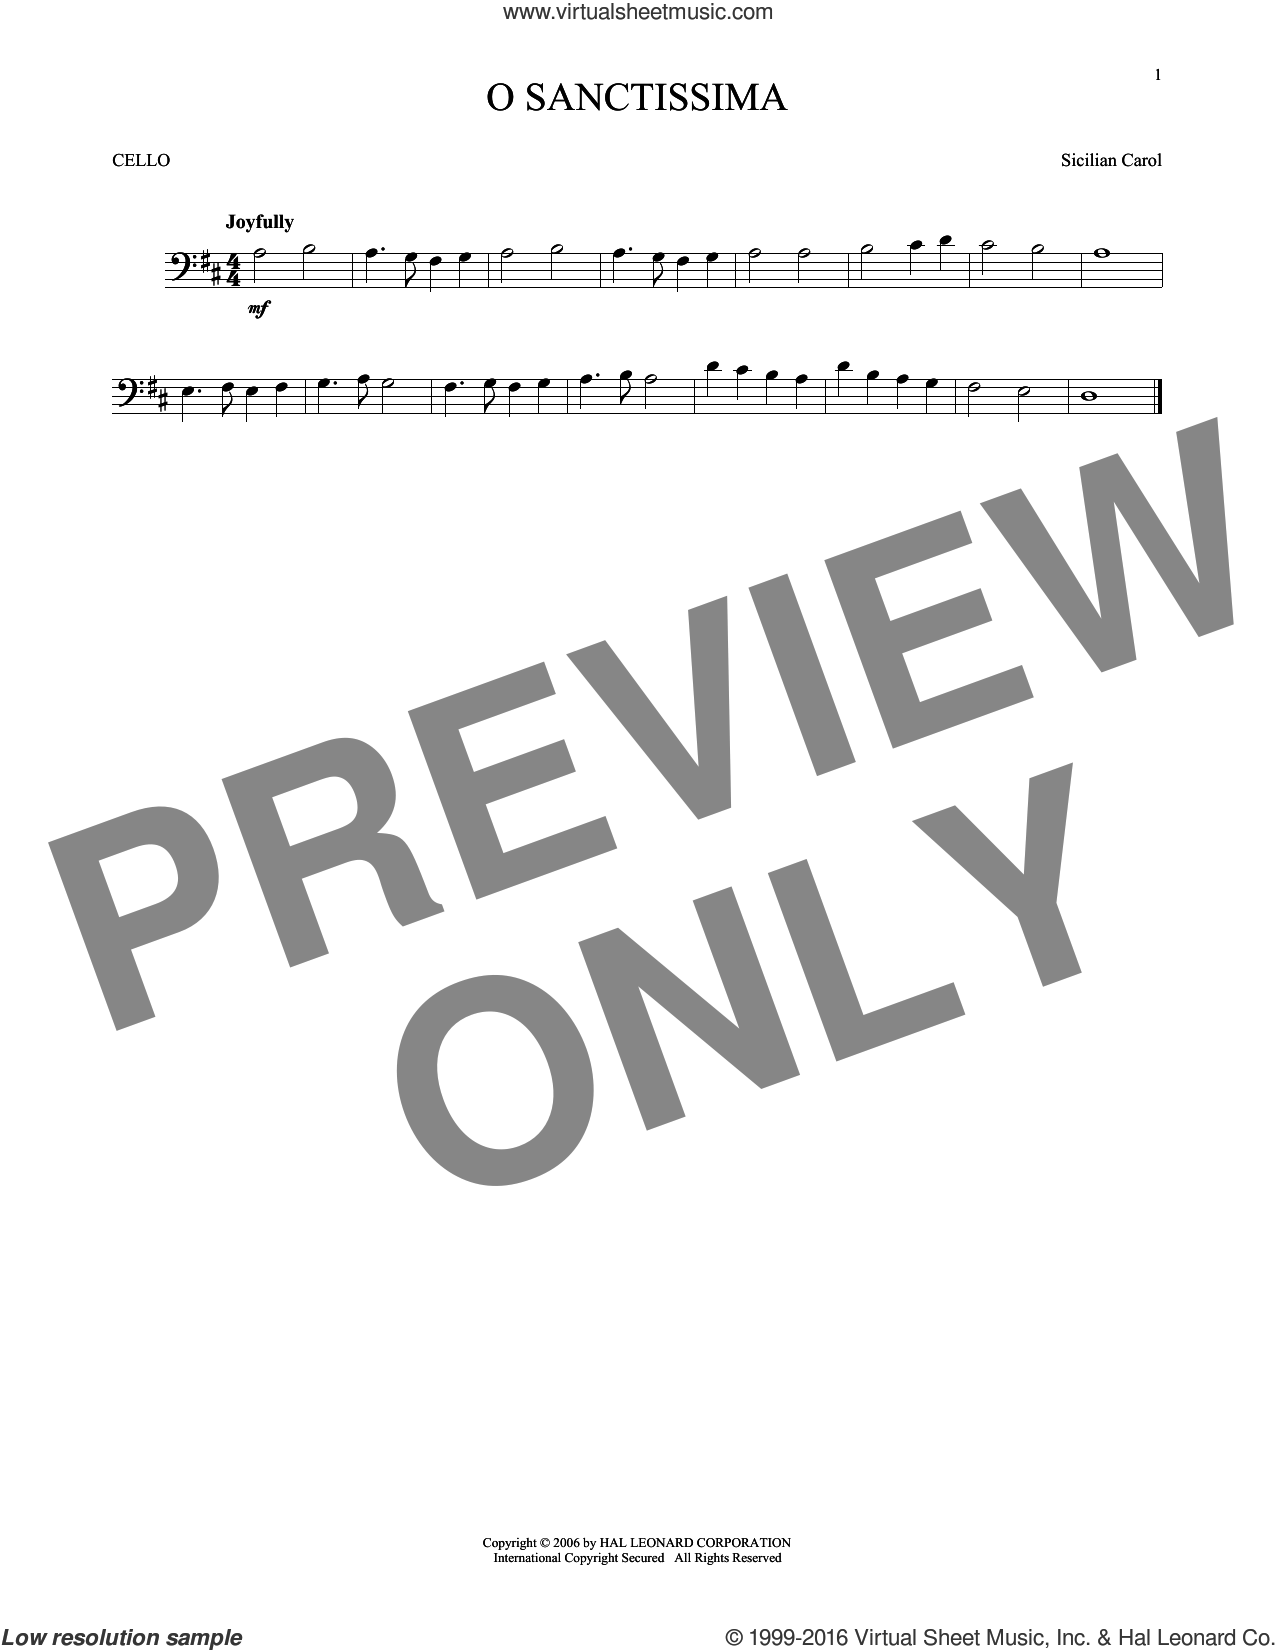 O Sanctissima sheet music for cello solo. Score Image Preview.